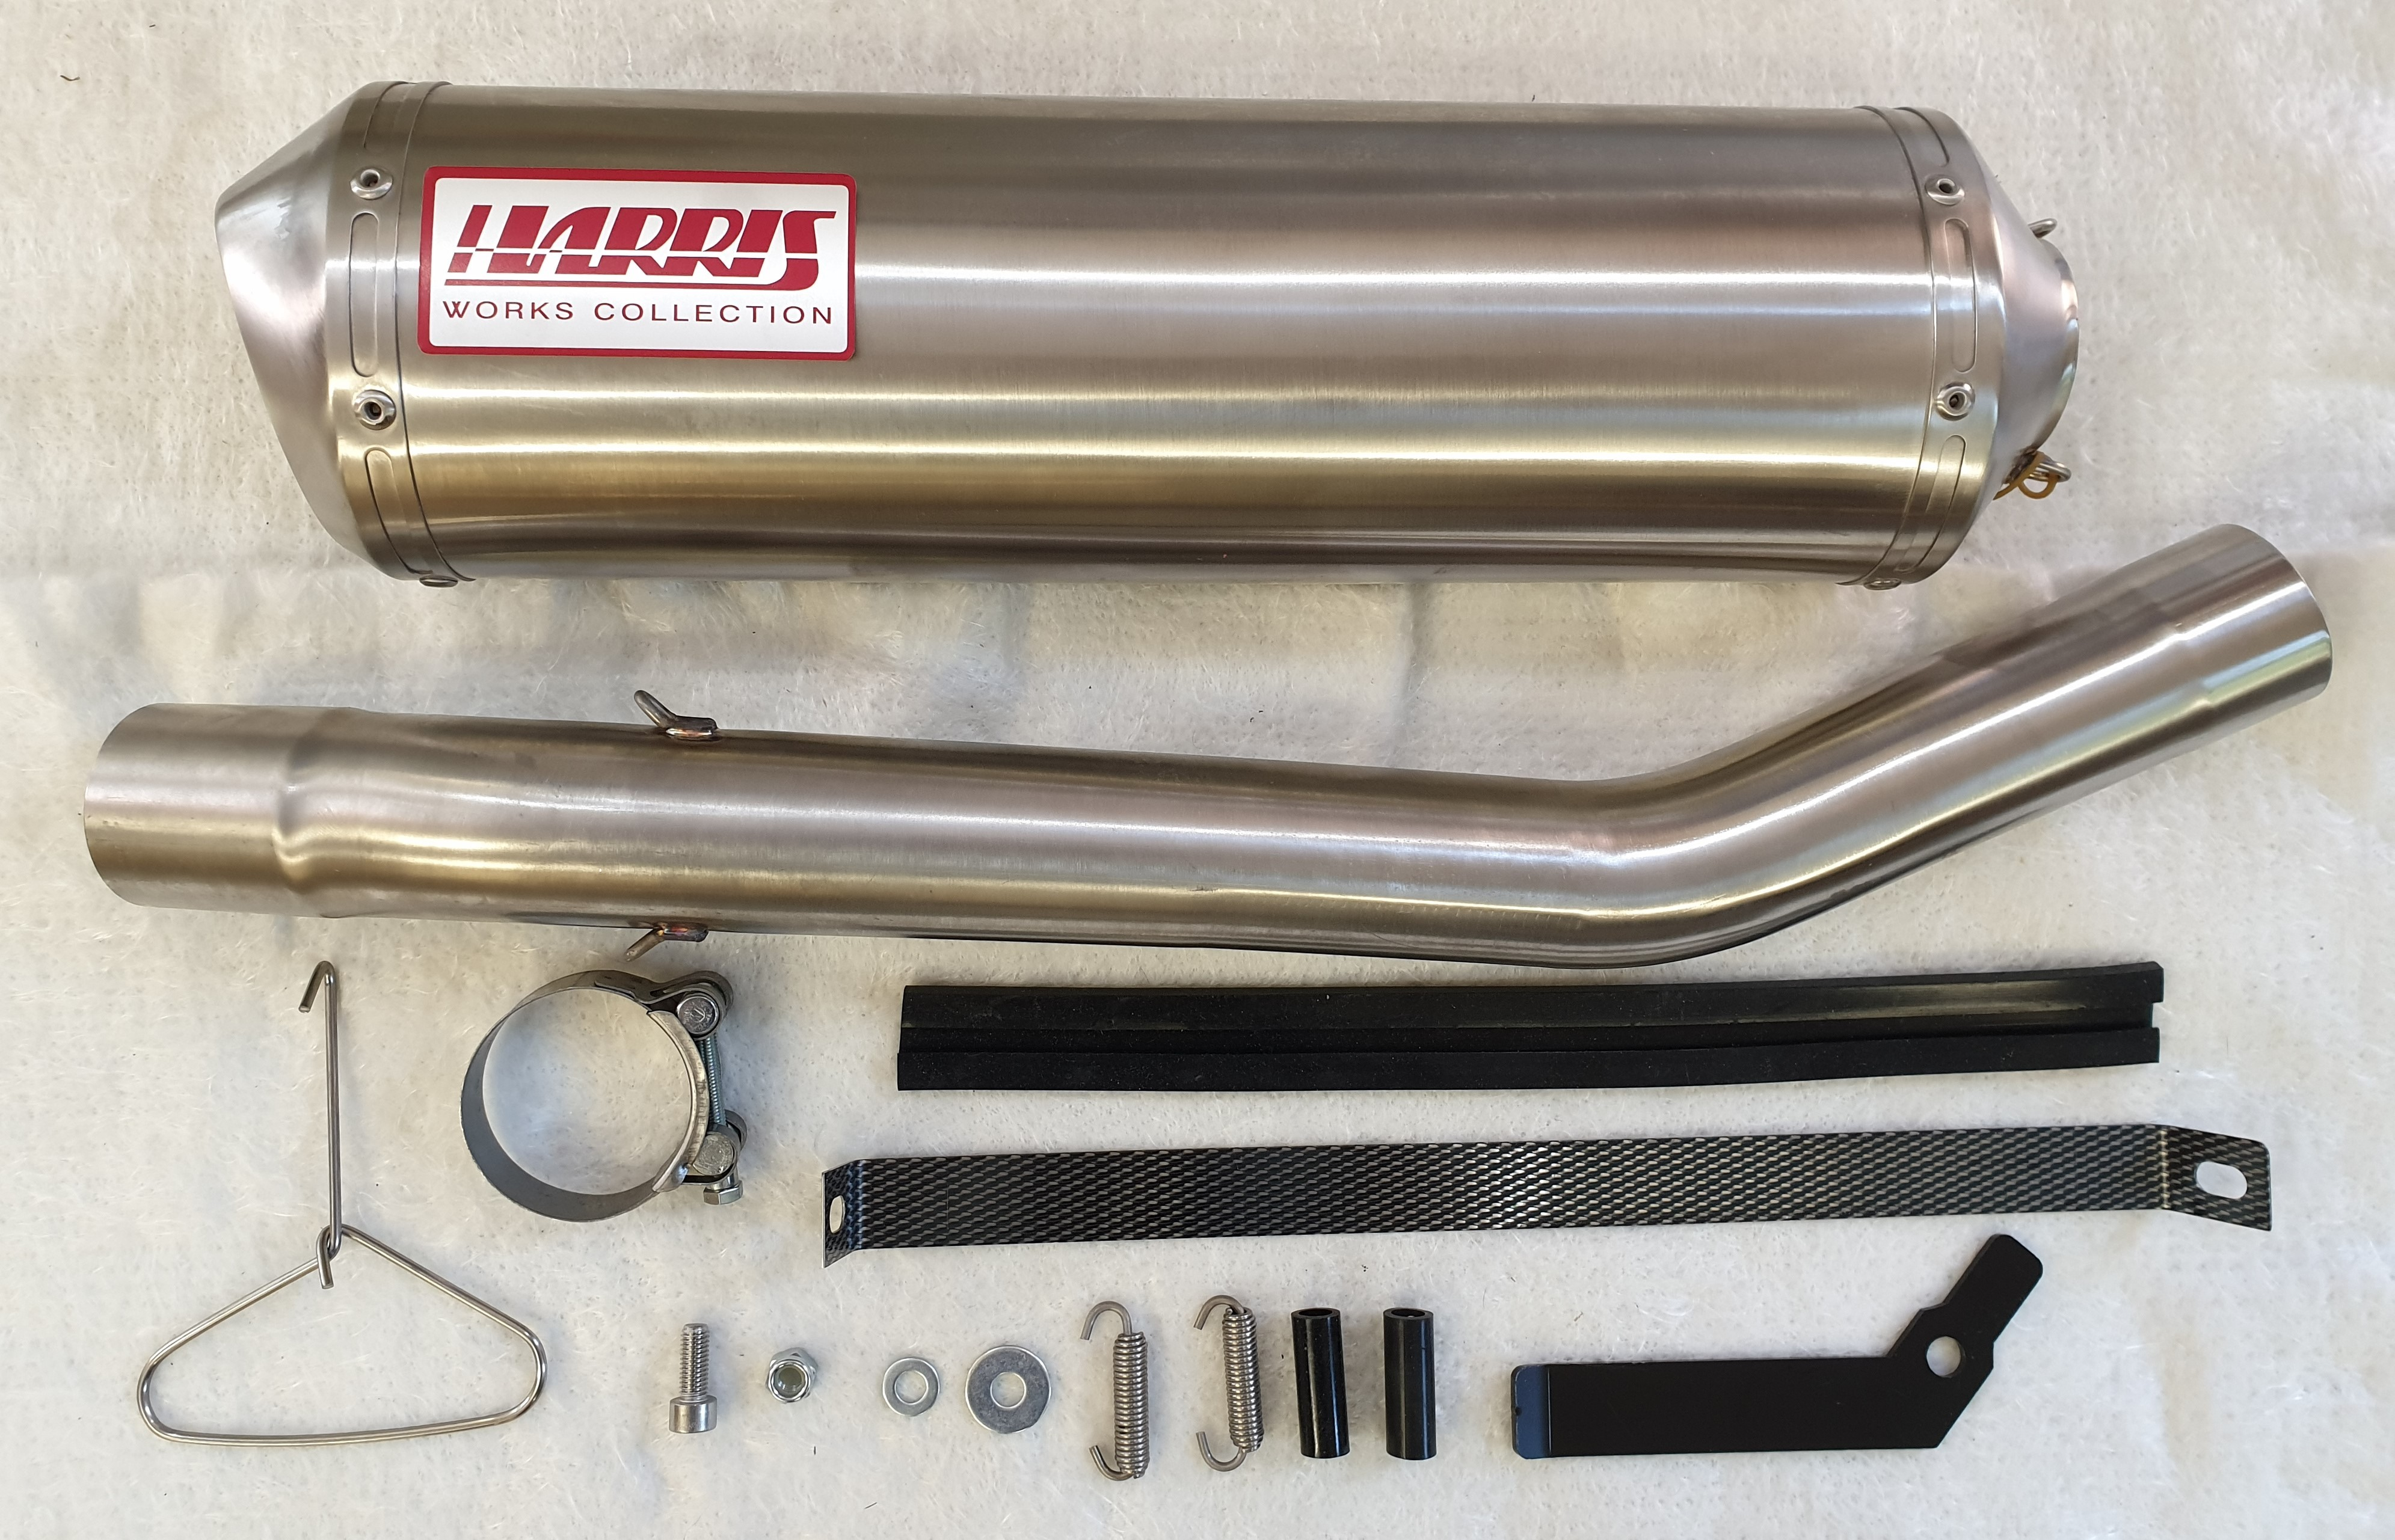 HARRIS WORKS COLLECTION STAINLESS SLIP-ON FOR SUZUKI GSF1200 BANDIT - S 1997/04